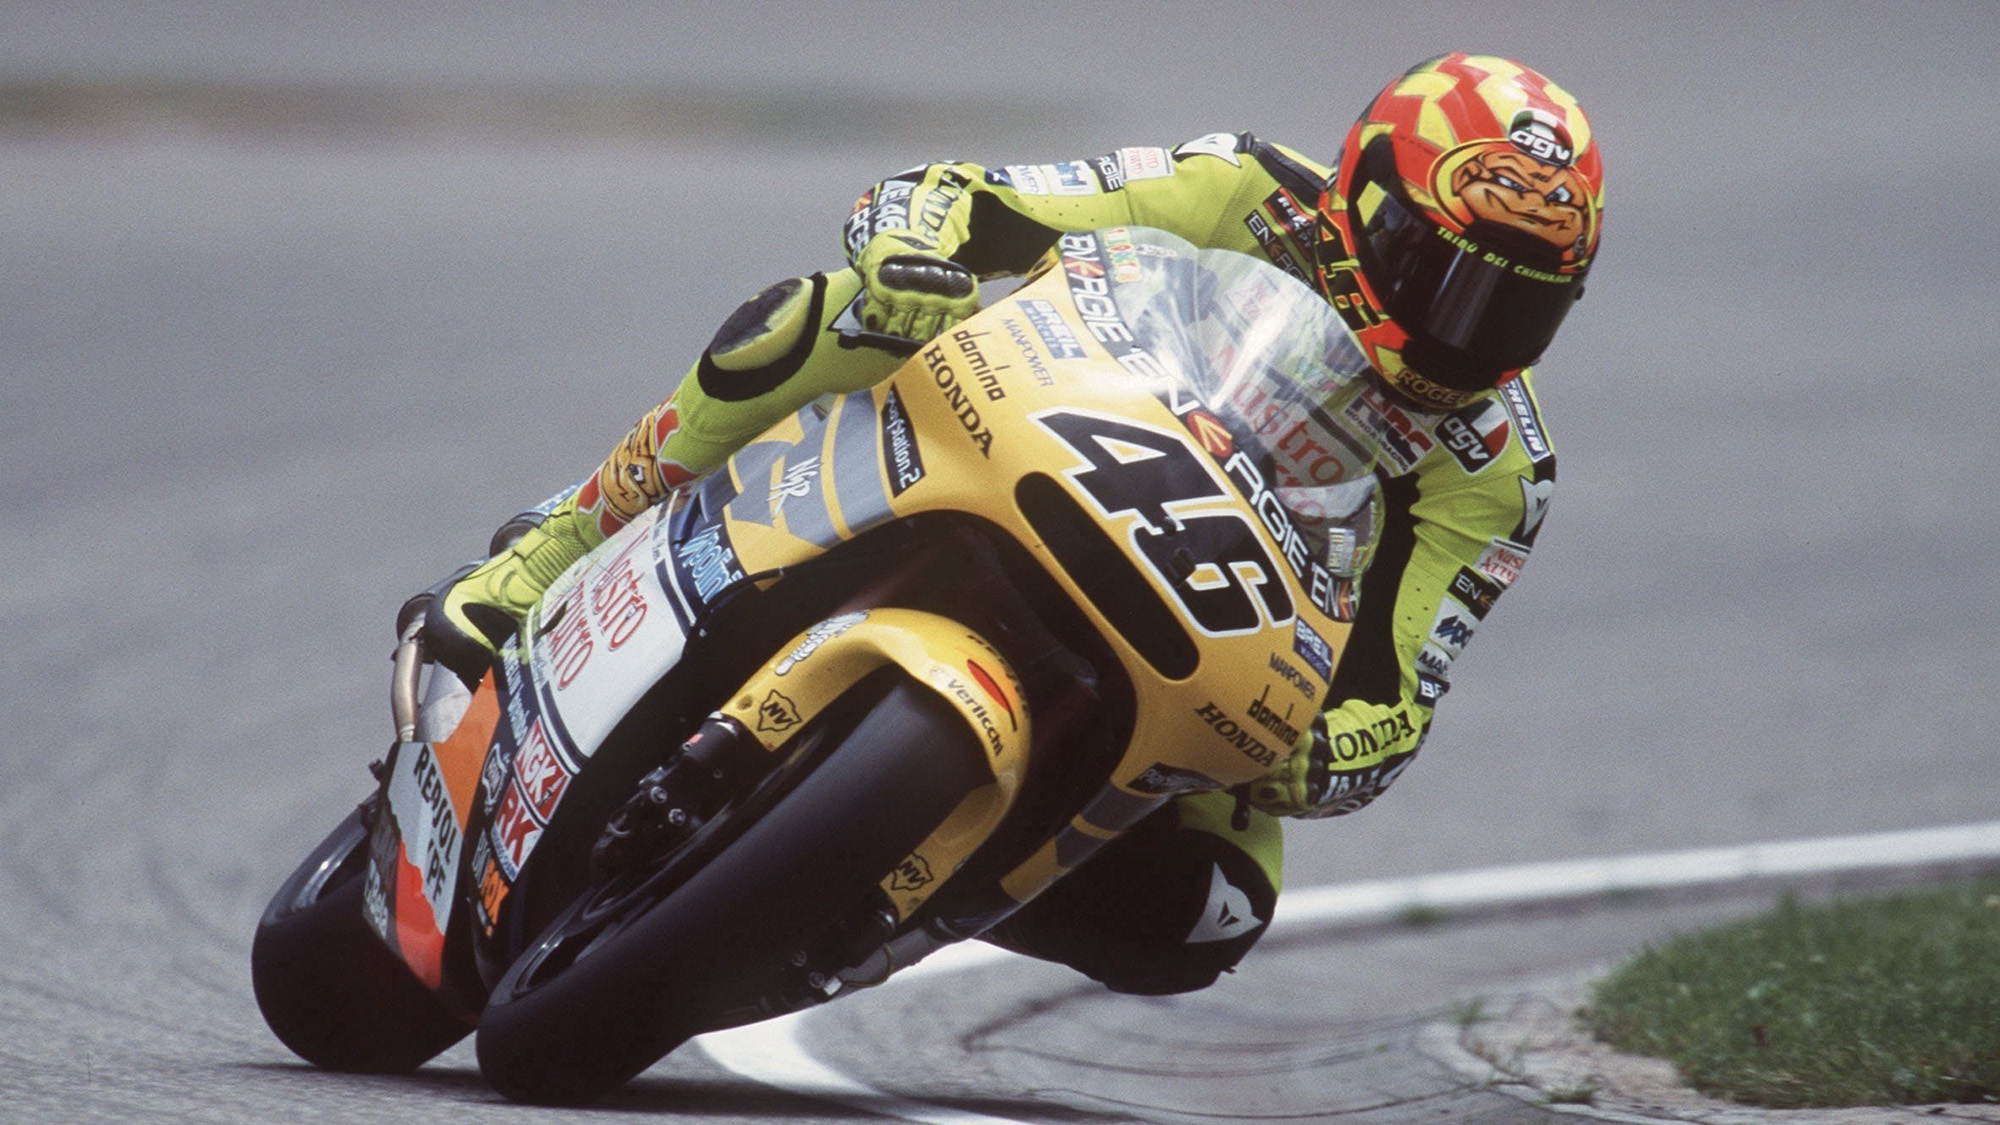 Valentino Rossi in the 2001 German Motorcycle Grand Prix